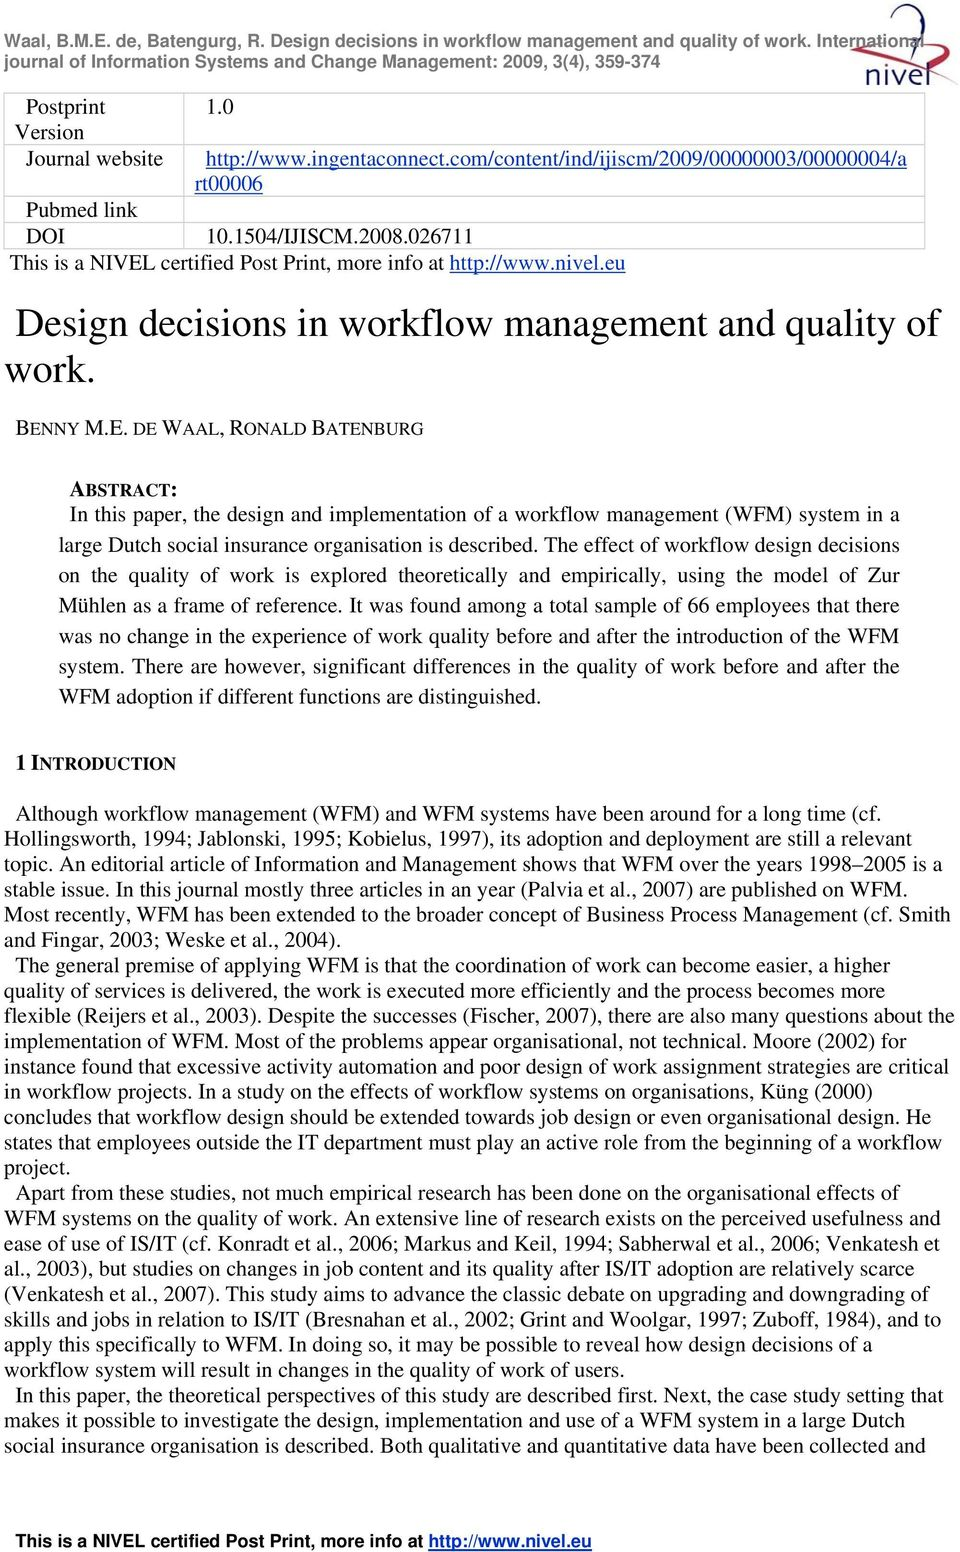 NY M.E. DE WAAL, RONALD BATENBURG ABSTRACT: In this paper, the design and implementation of a workflow management (WFM) system in a large Dutch social insurance organisation is described.